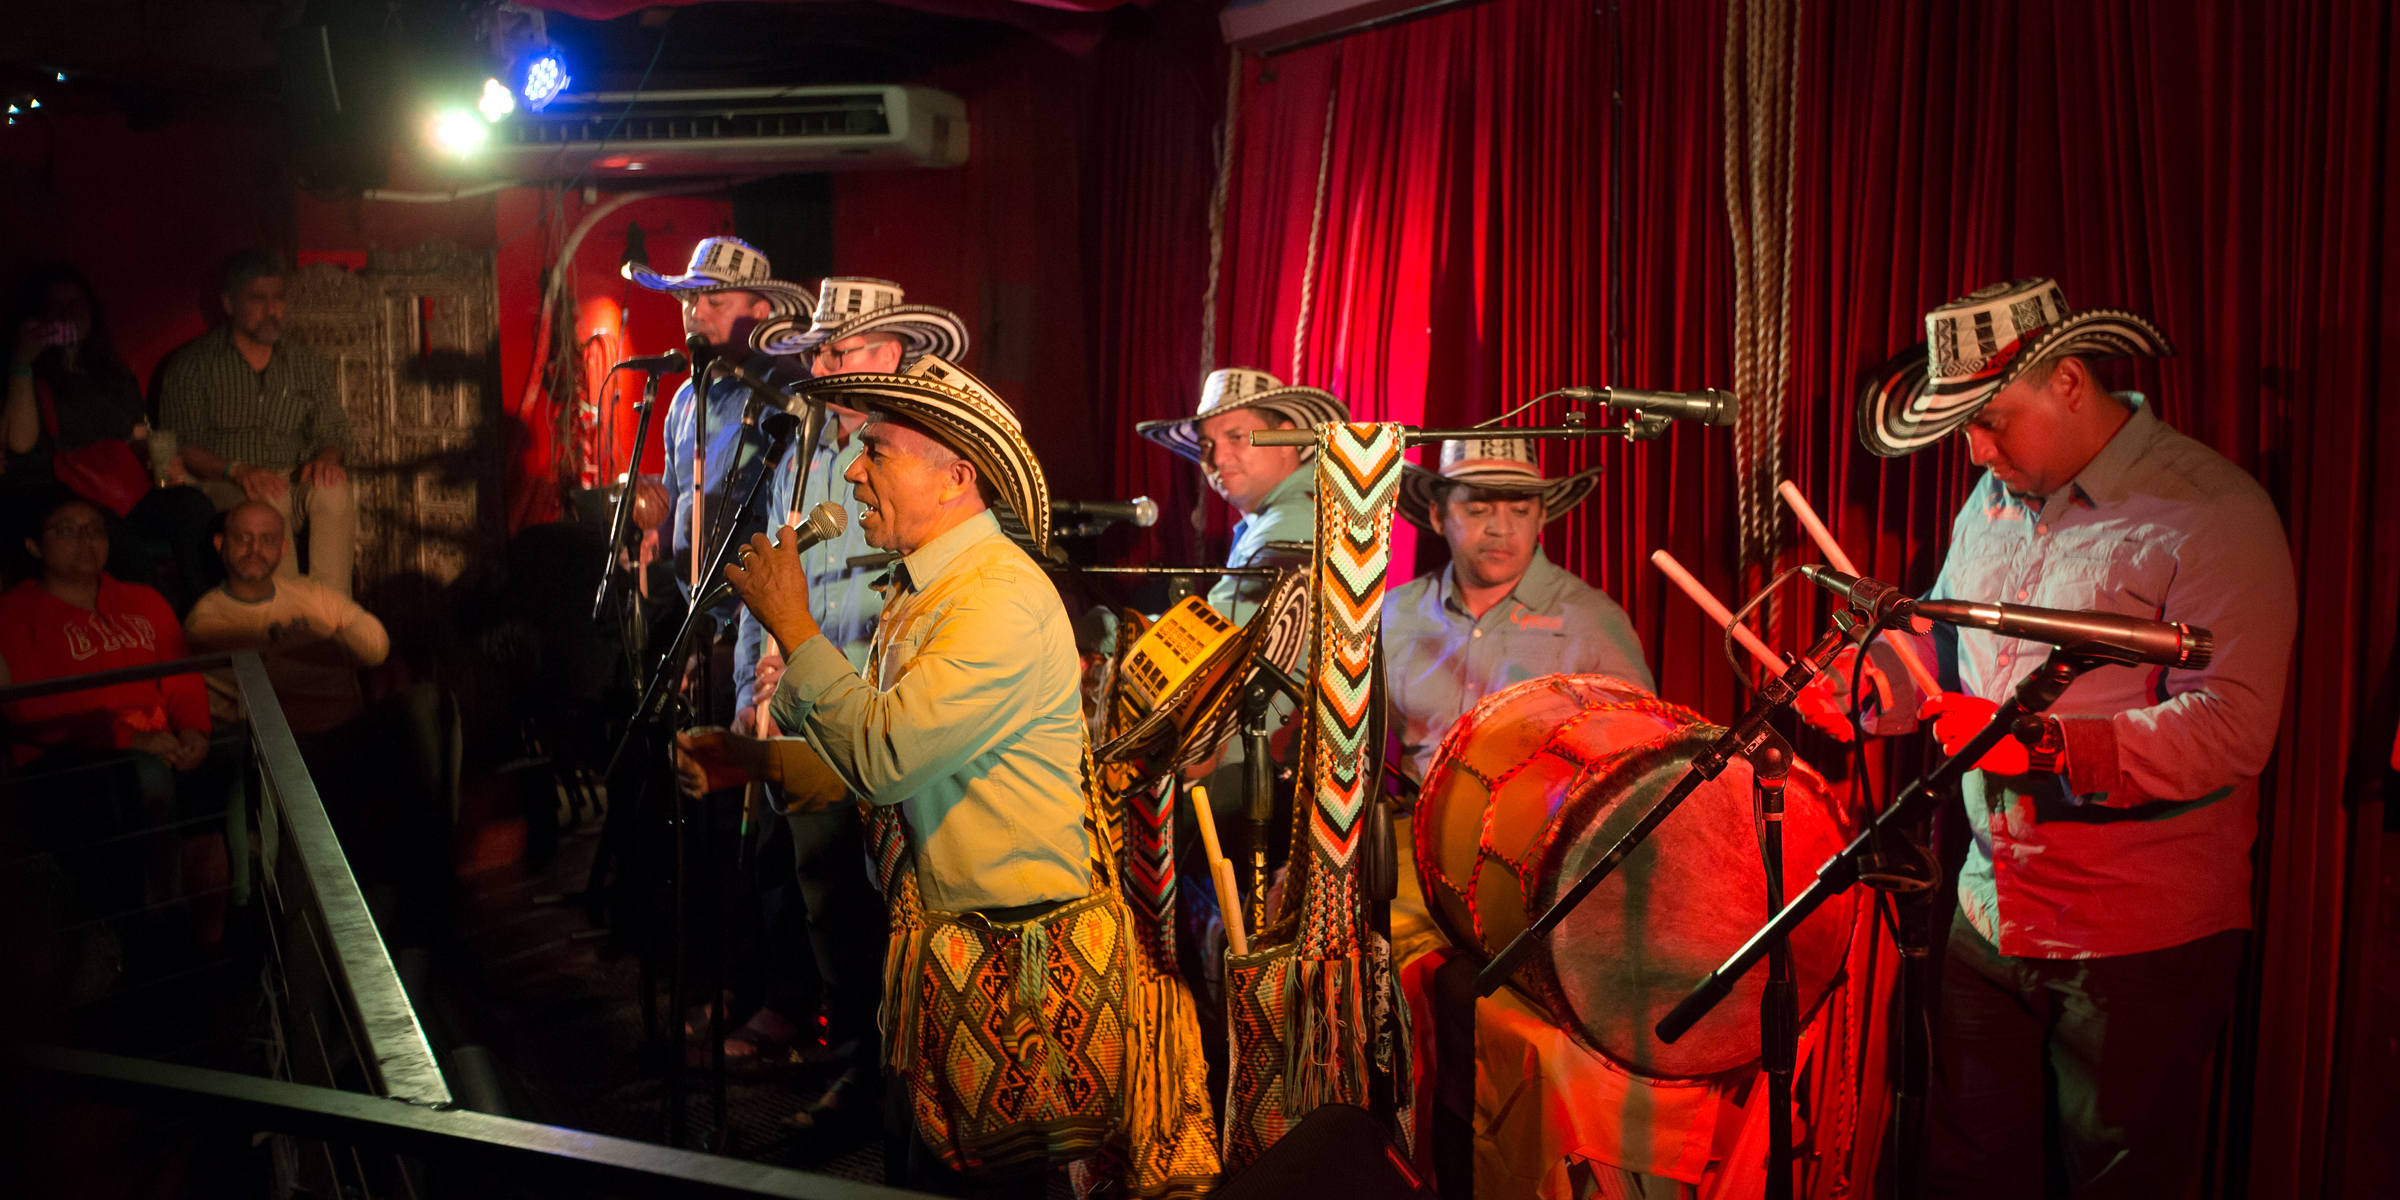 Los Gaiteros de San Jacinto performing at Terazza 7, in Elmhurst, NY June 28th 2018